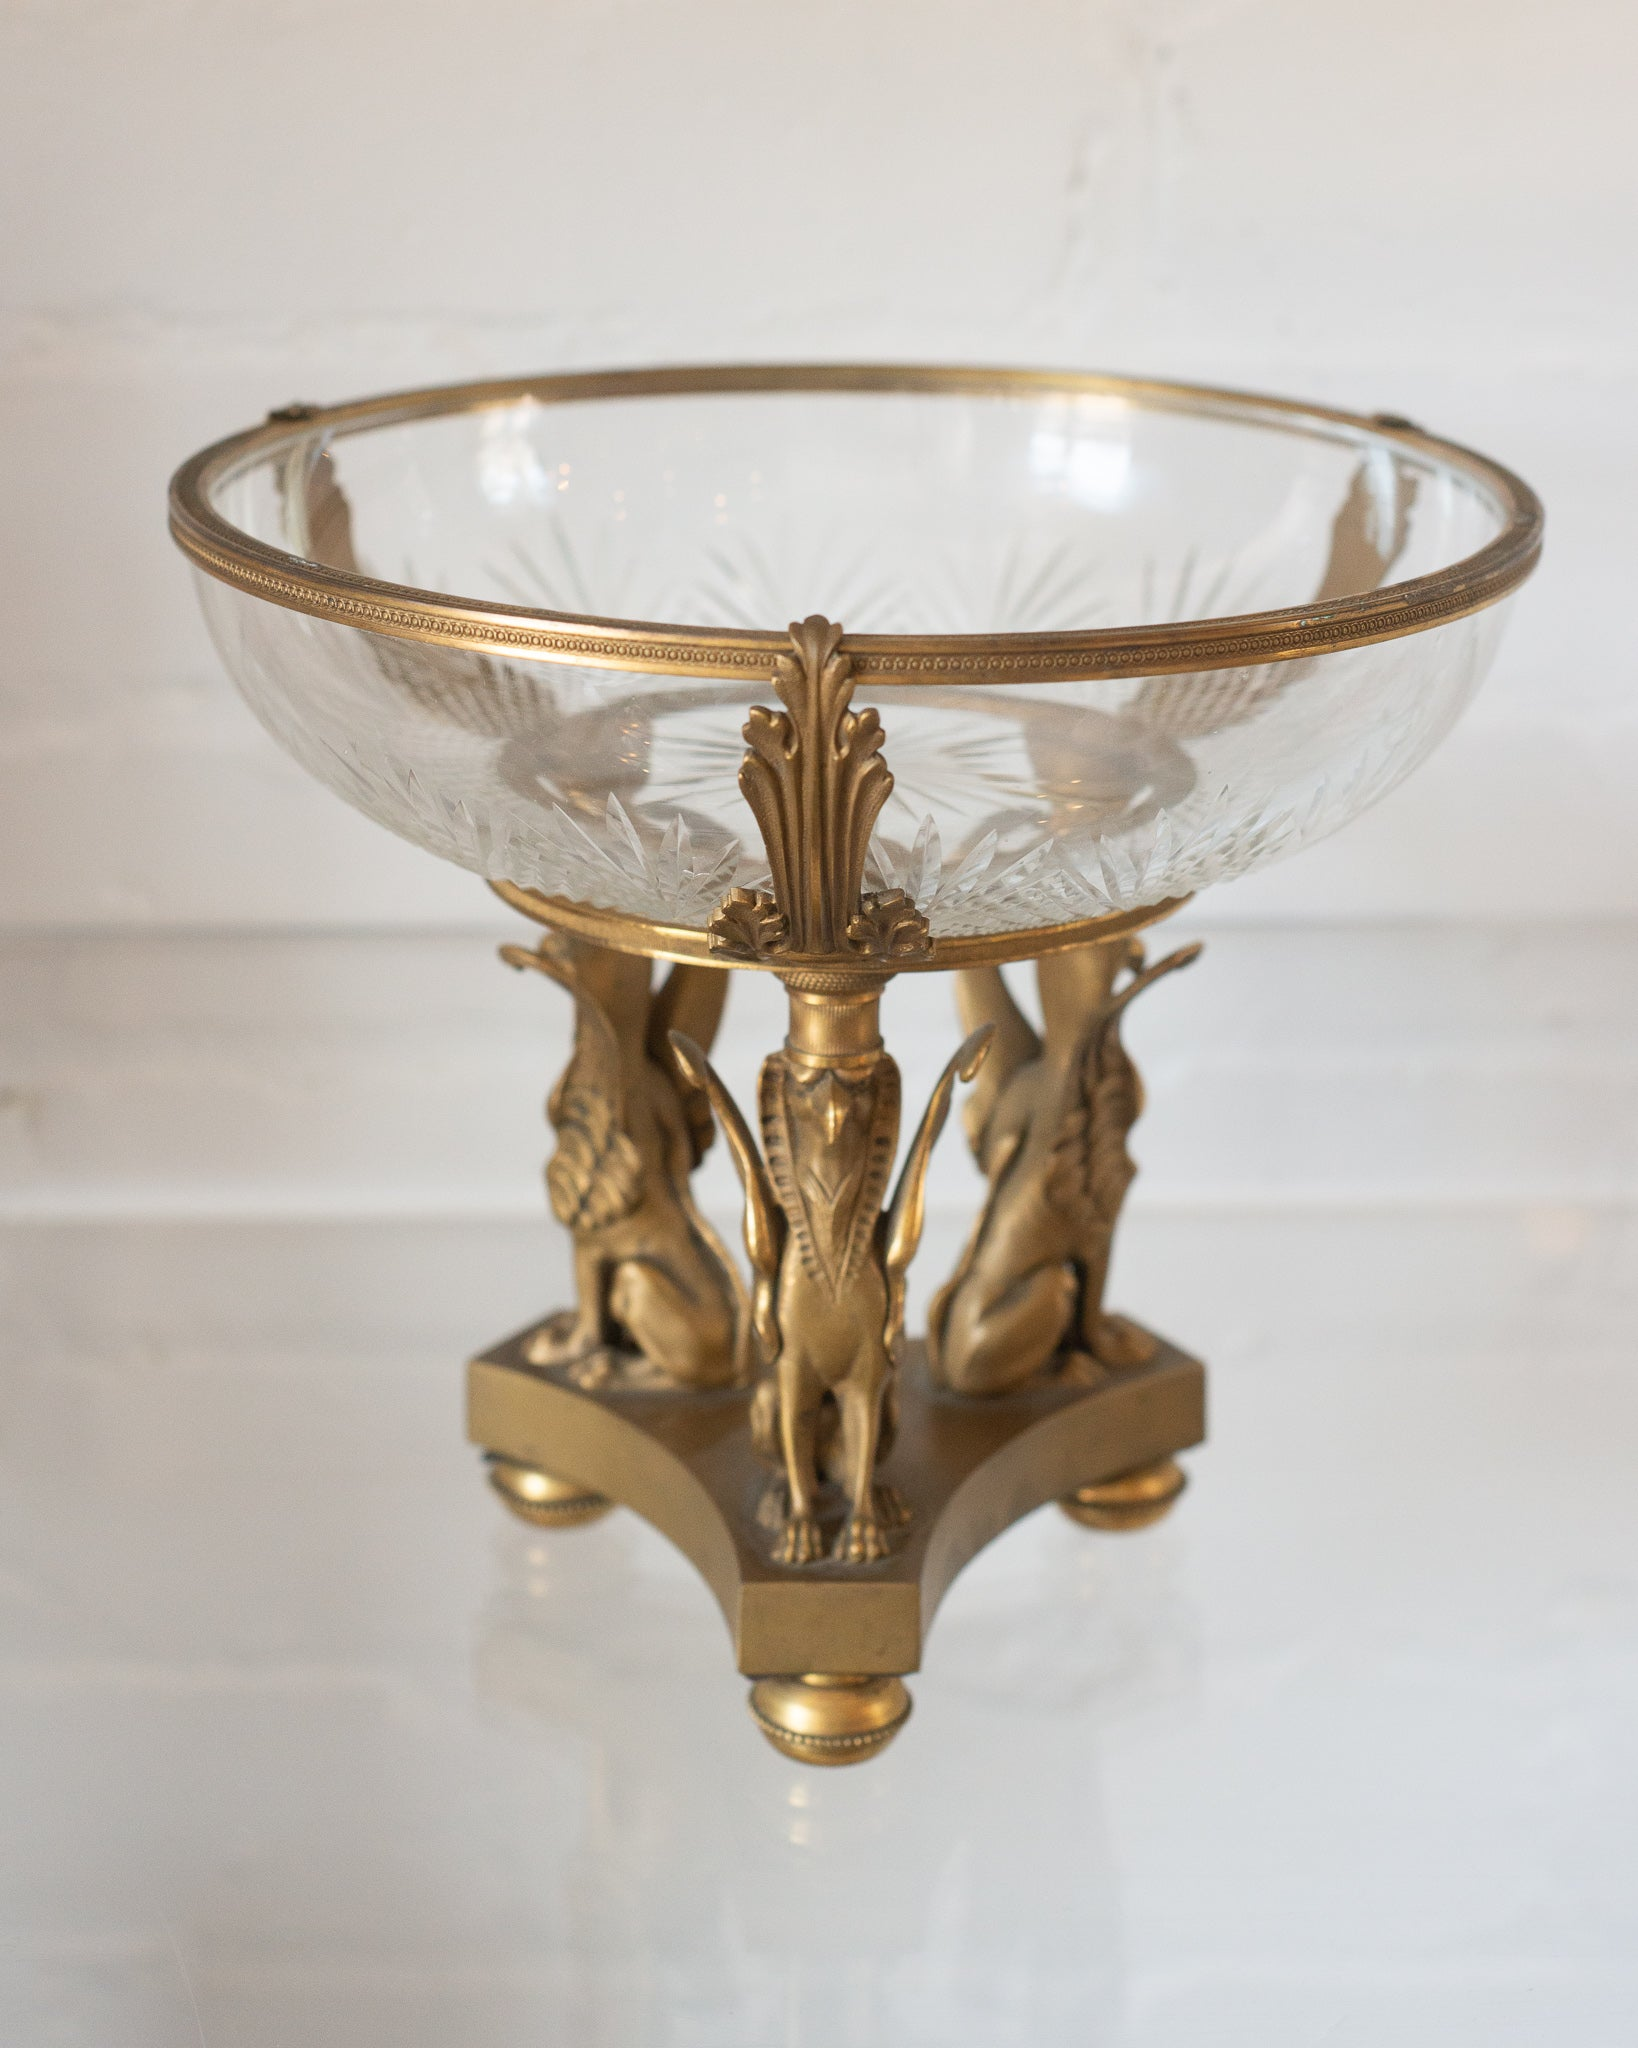 ANTIQUE BACCARAT BRONZE MOUNT BOWL